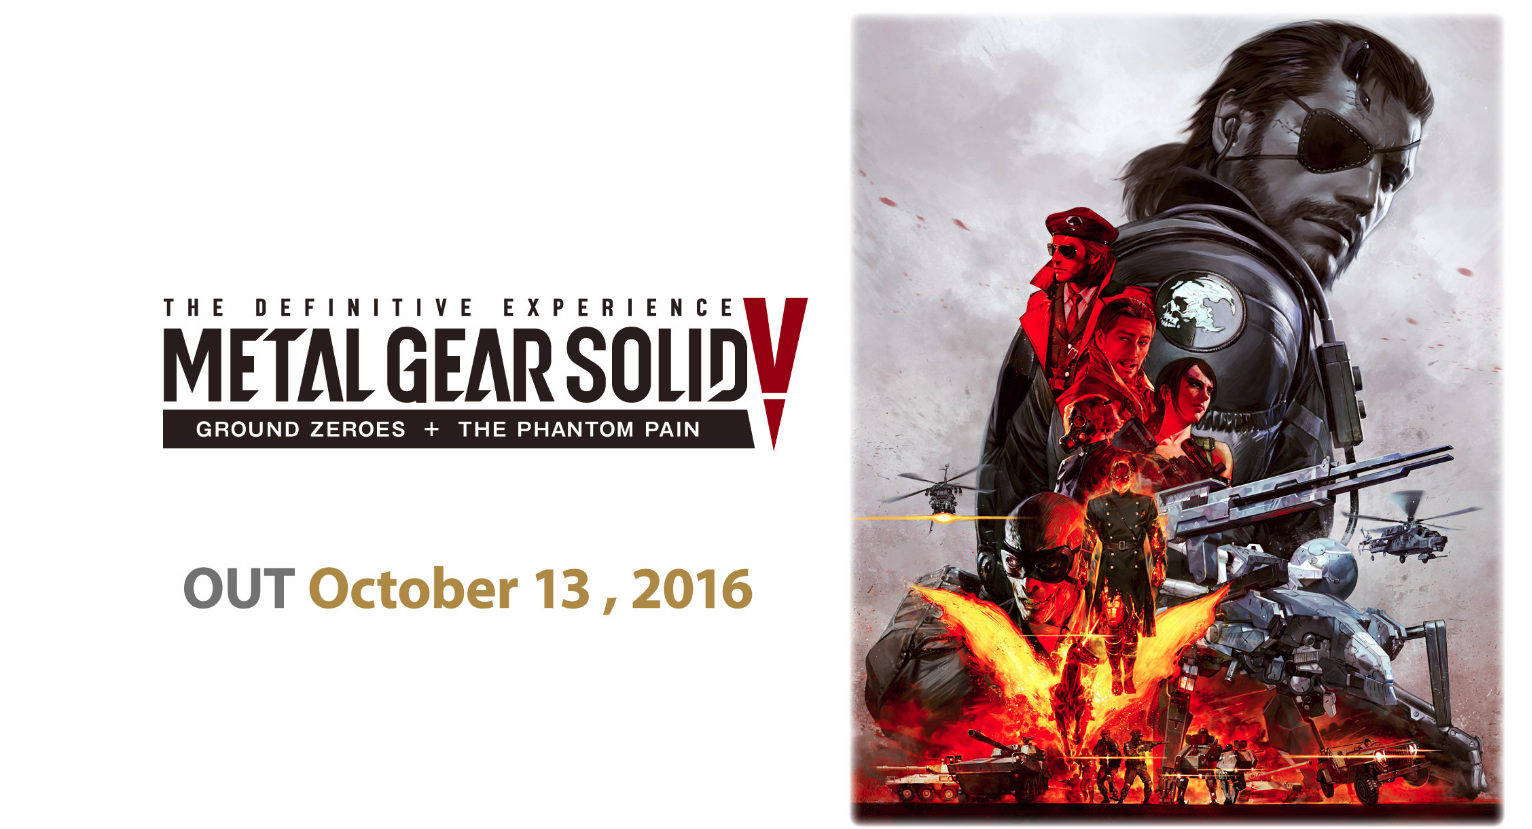 Metal Gear Solid 5 The Definitive Experience